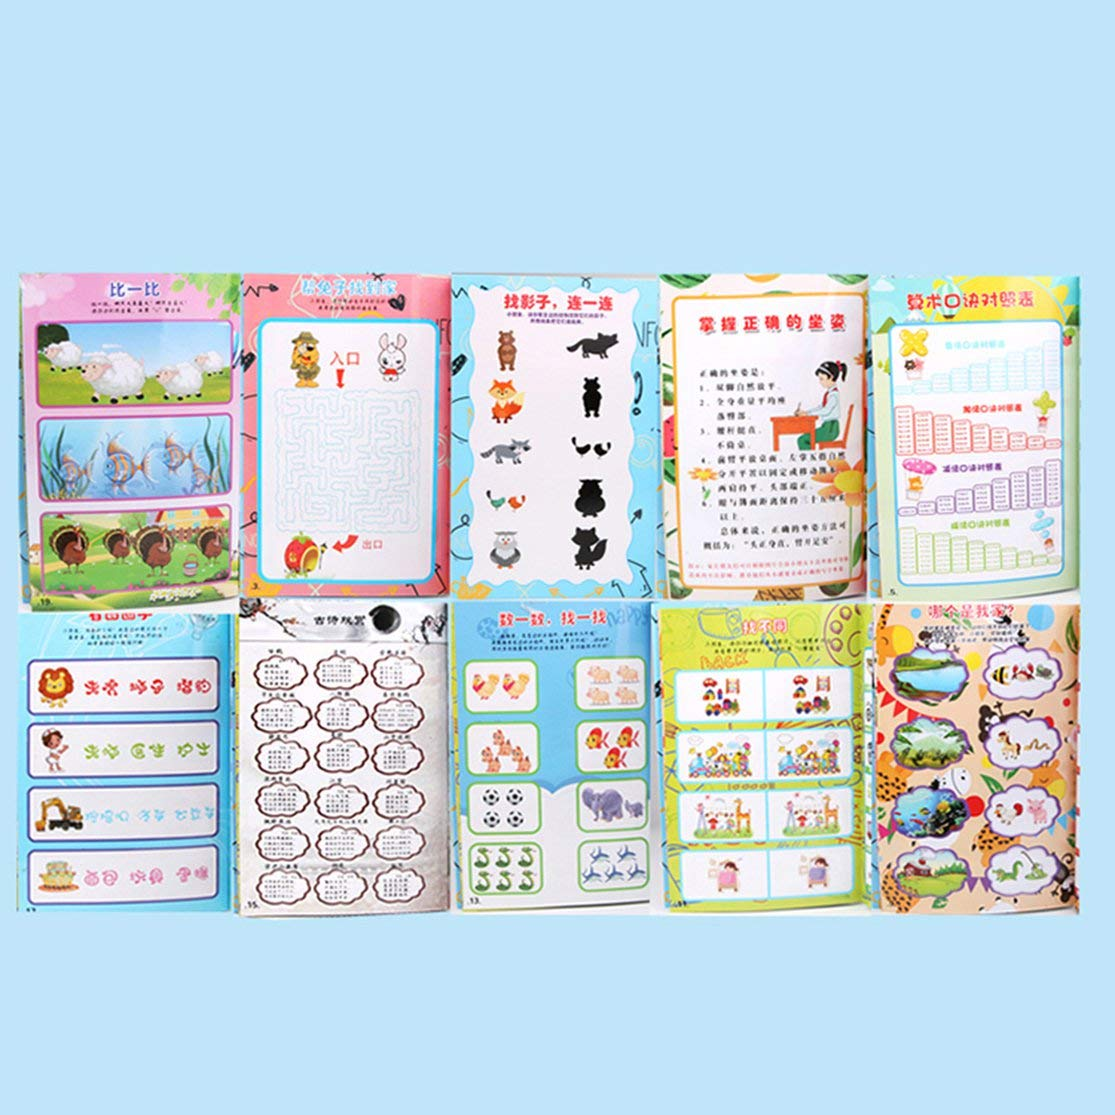 Chinese And English Reading Stories Infant Learning Machines LouiseEvel215 Early Childhood Educational Toys Sound Point Reading